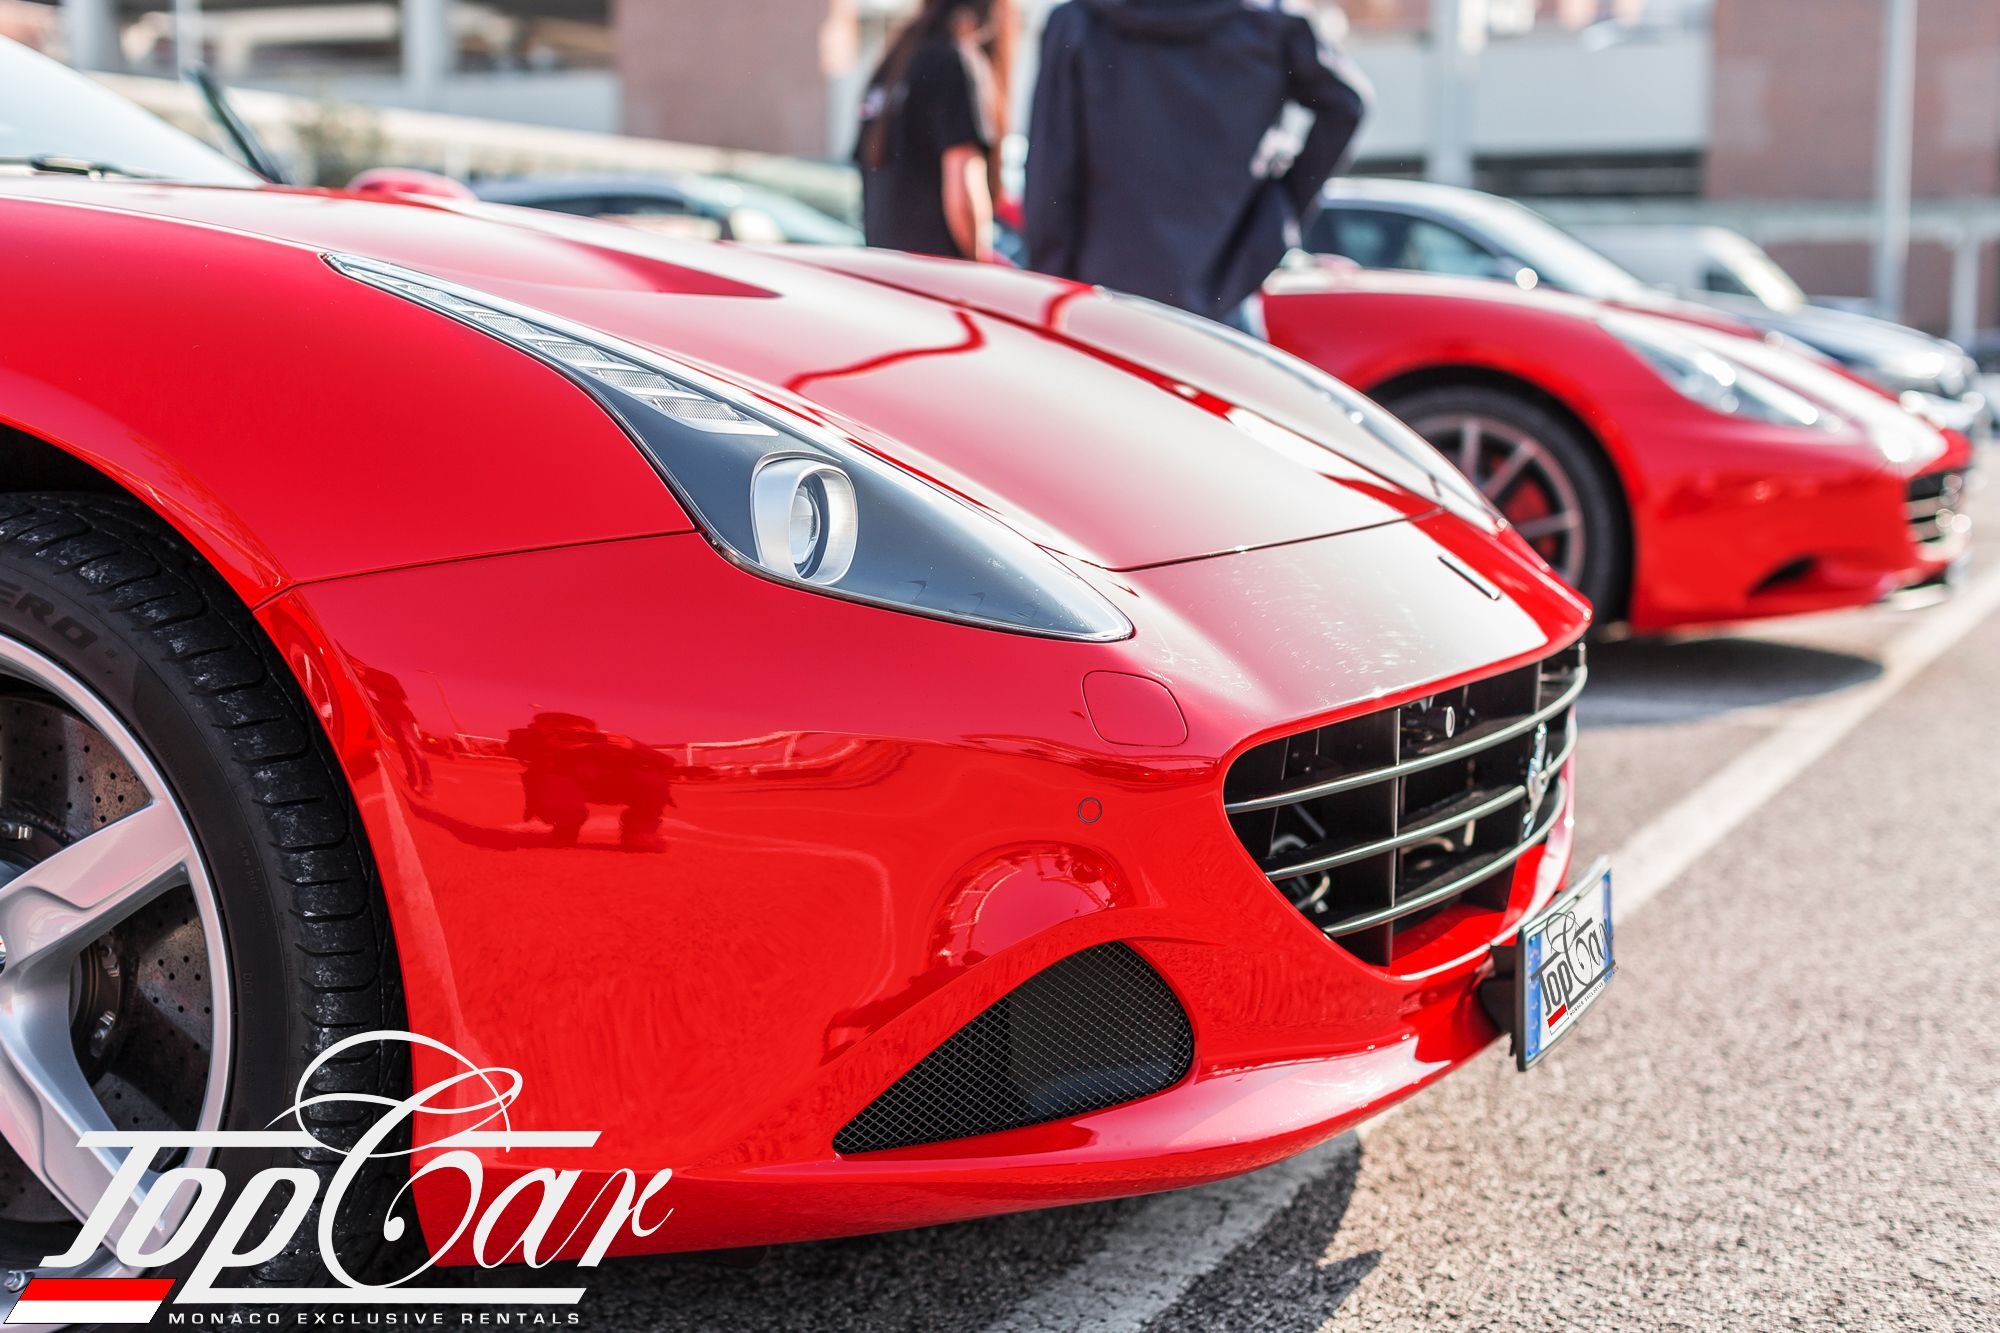 Pin On Luxury Cars Driving Tours In Europe